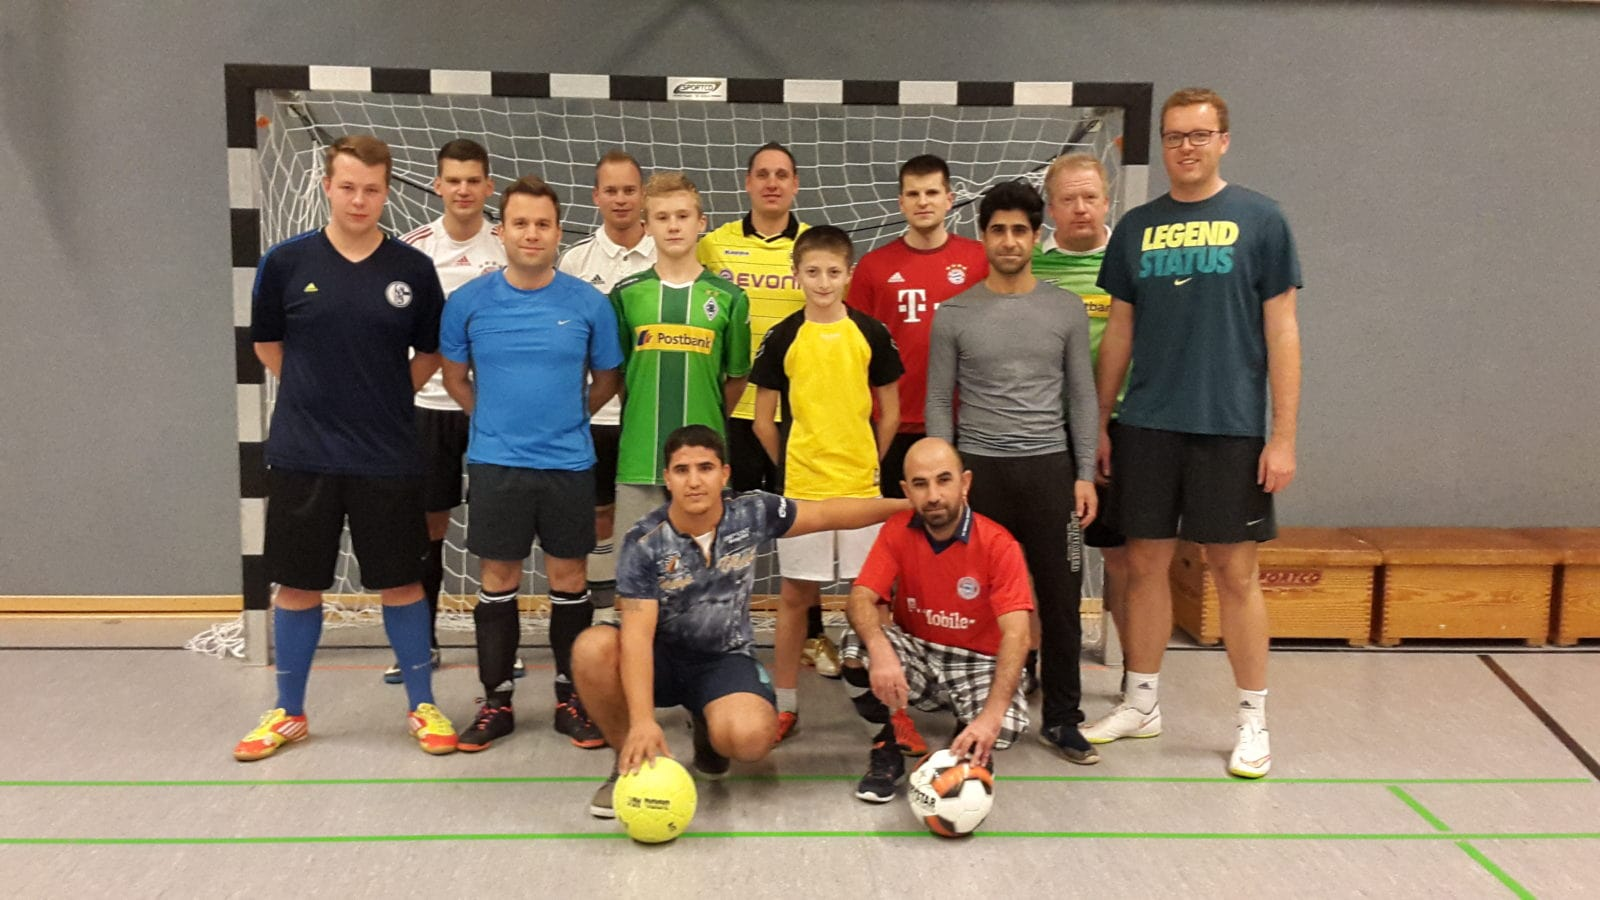 Grube United Team